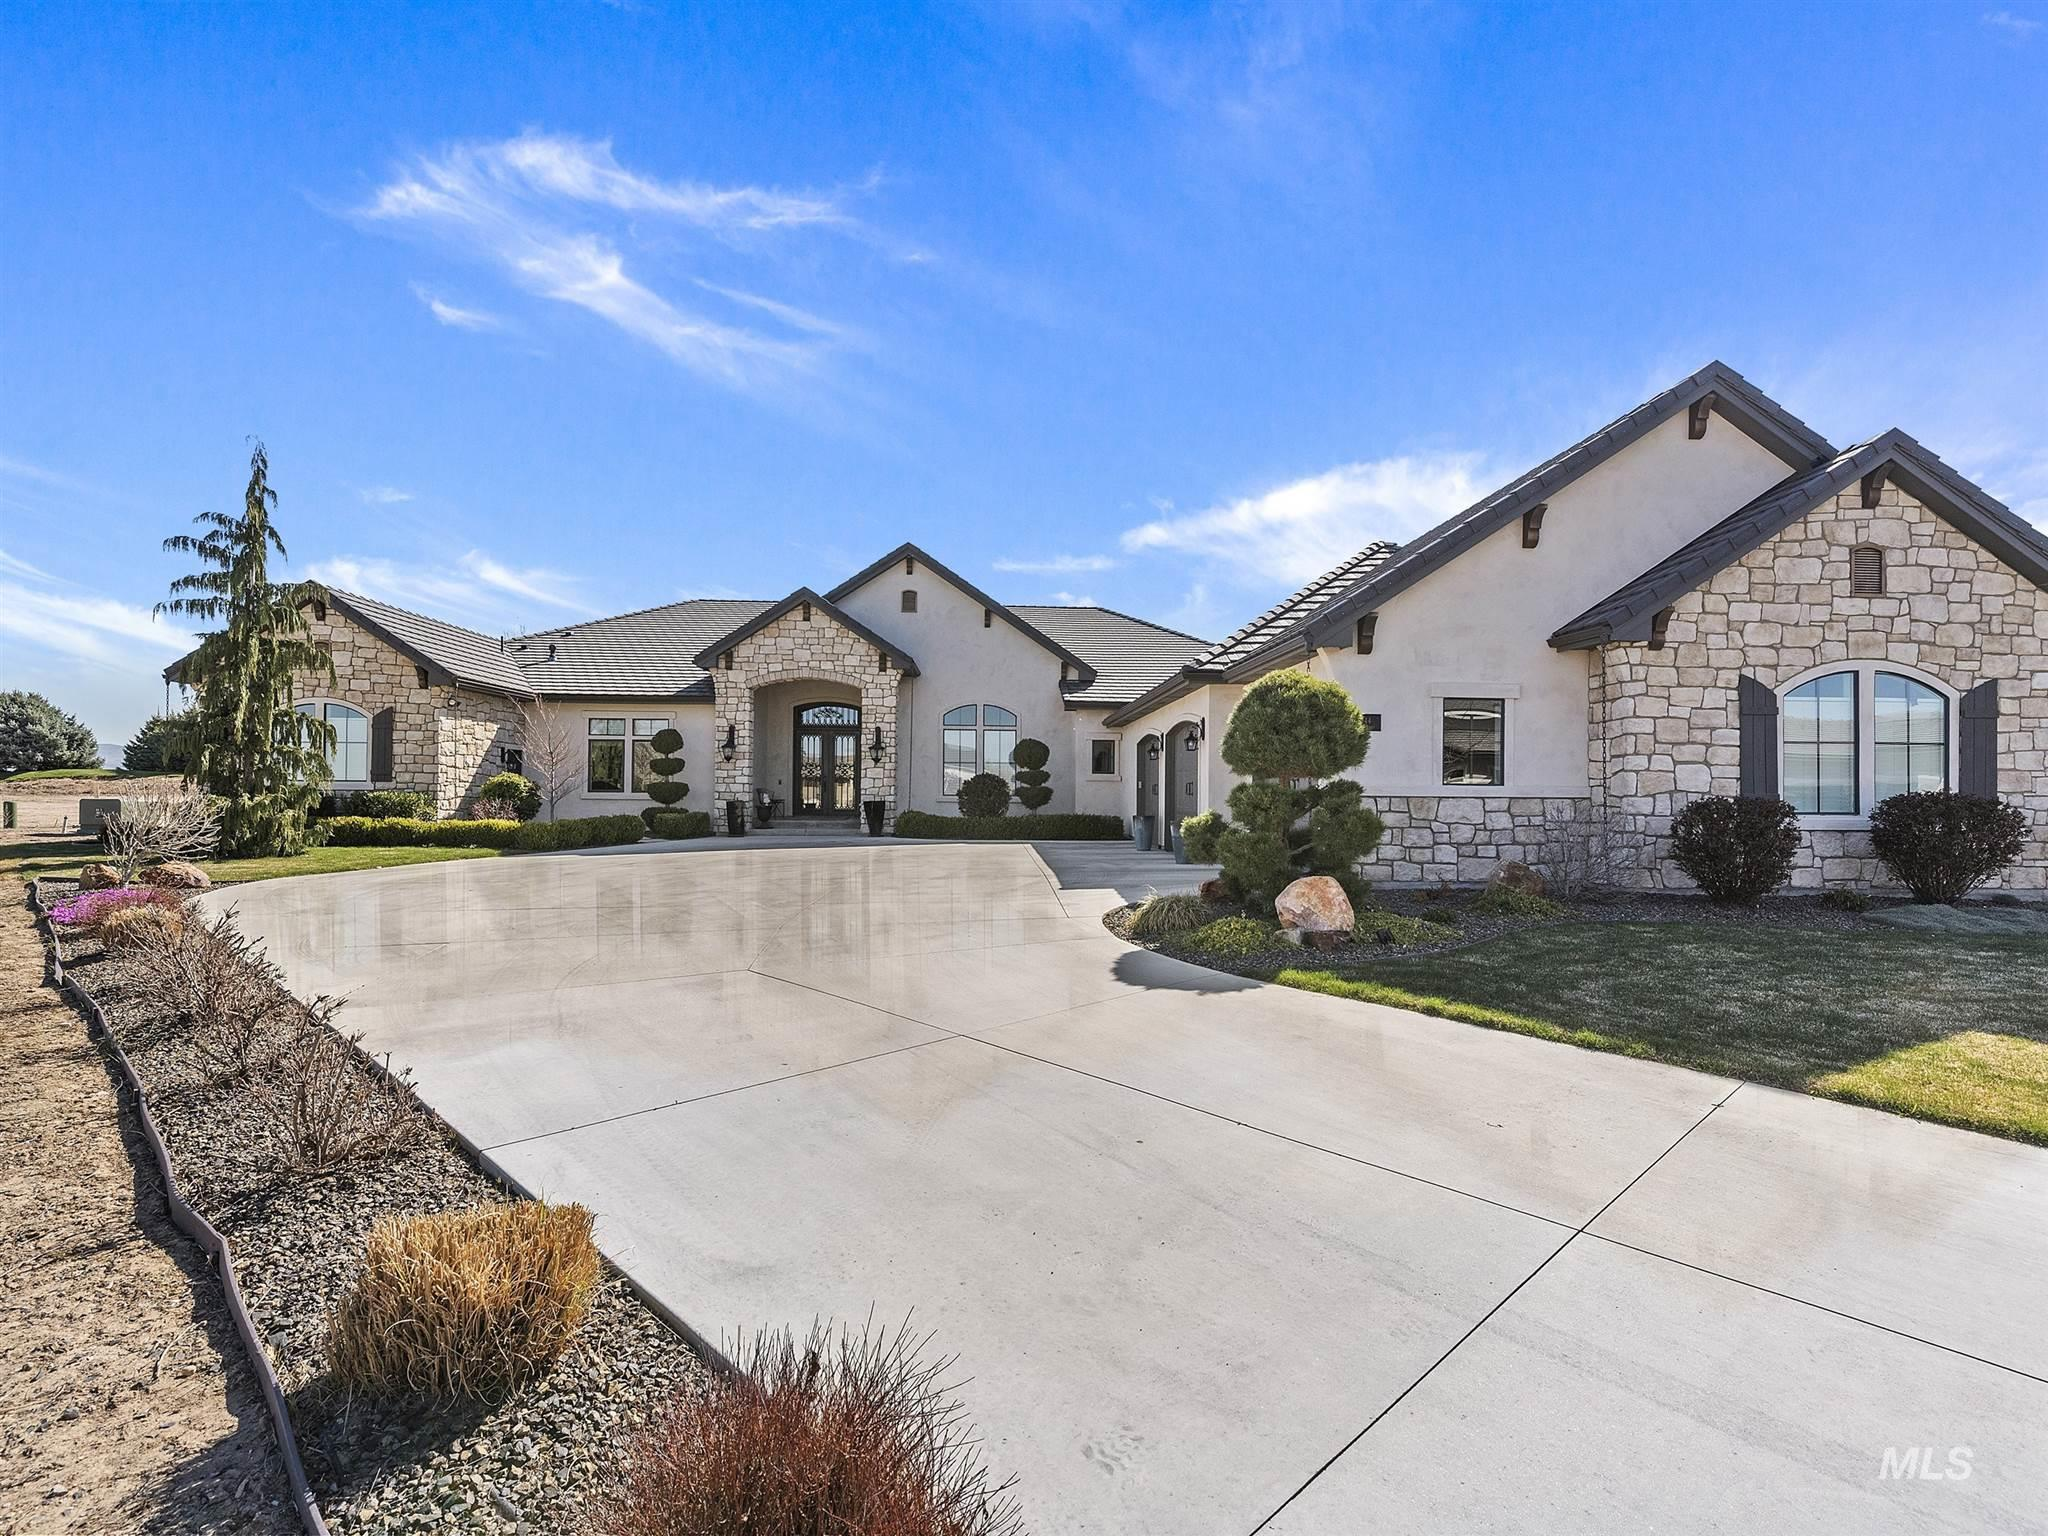 3244 W Salix Drive Property Photo - Meridian, ID real estate listing